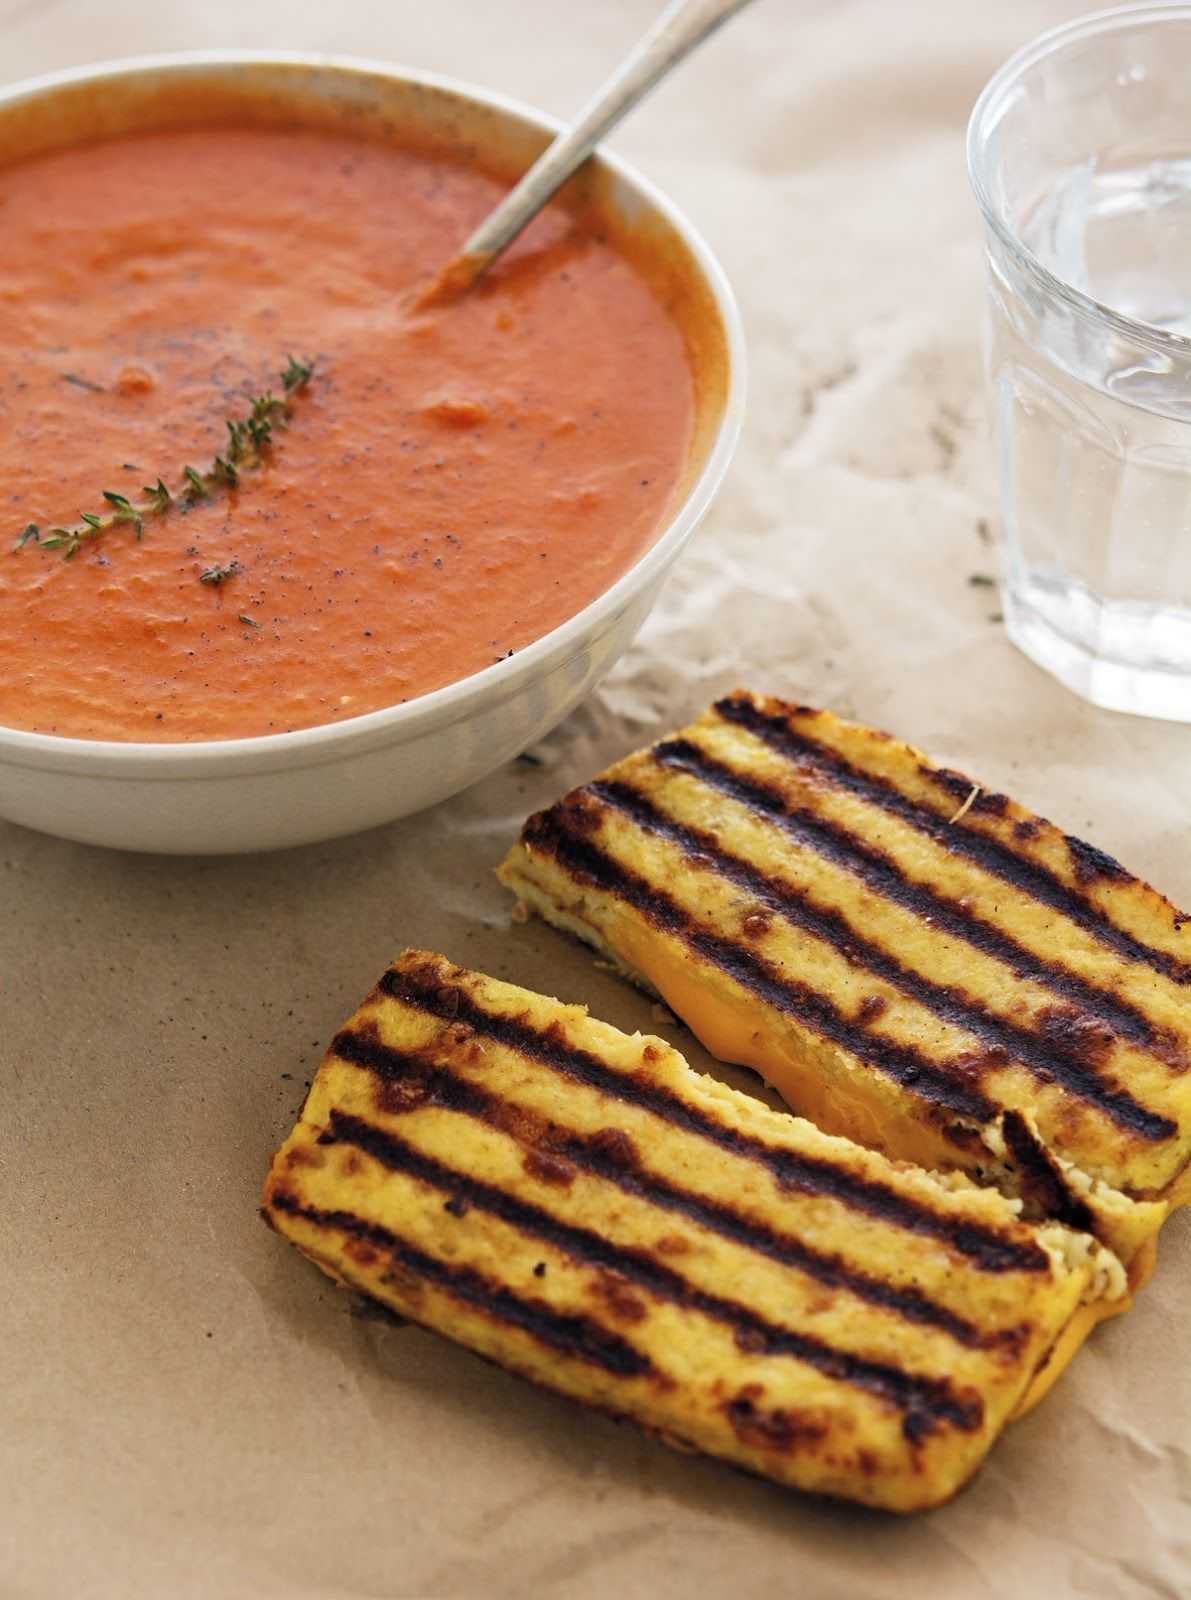 Creamy Tomato Soup + Cauliflower Crust Grilled Cheese